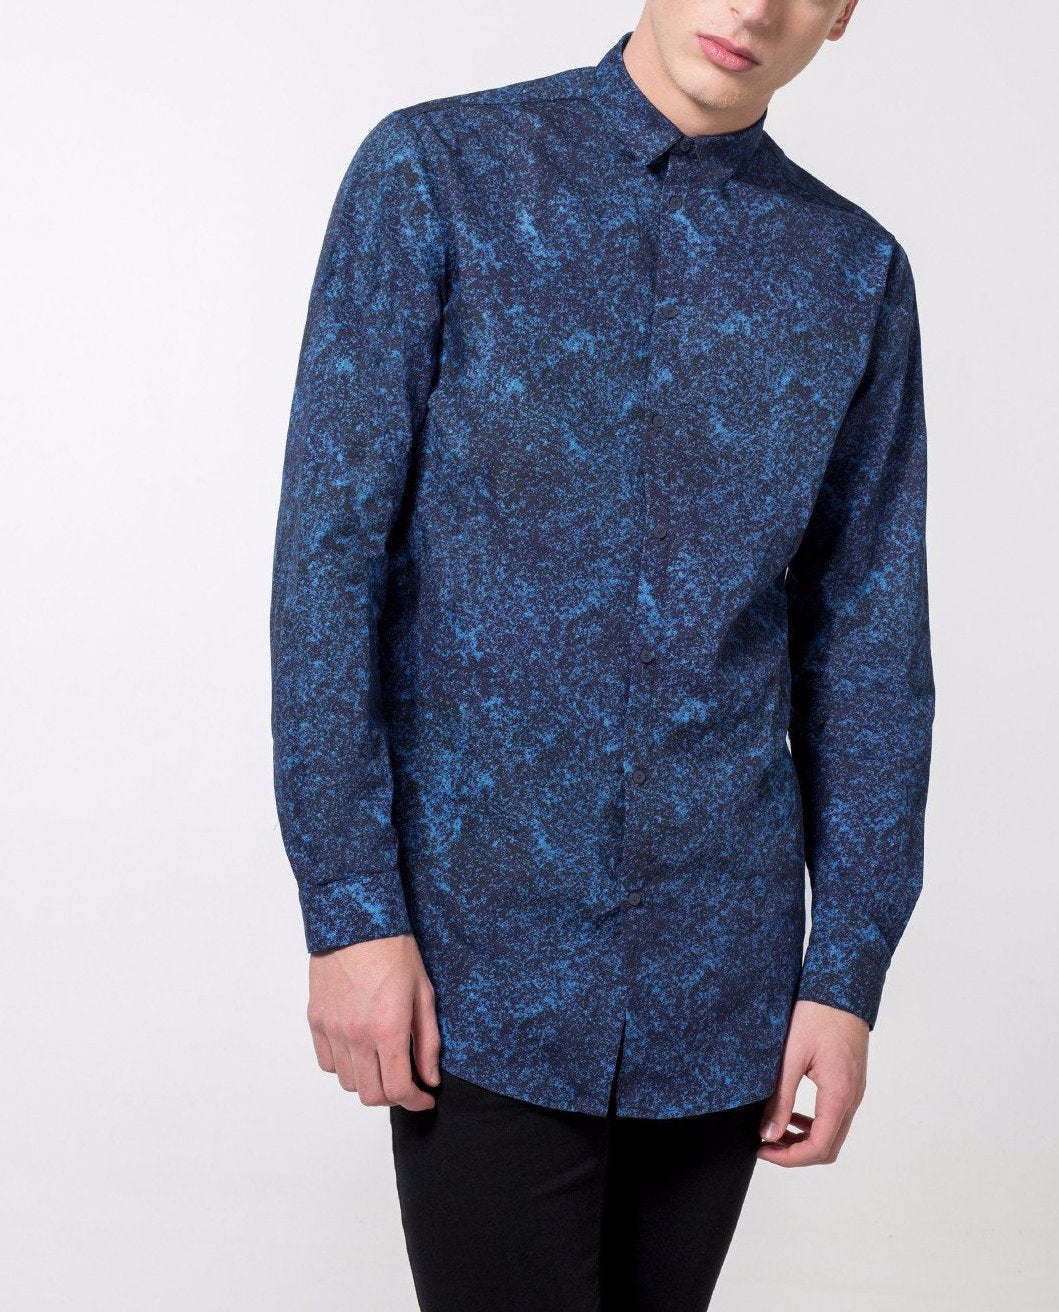 Texture Print Shirt - Local Pattern  - 2